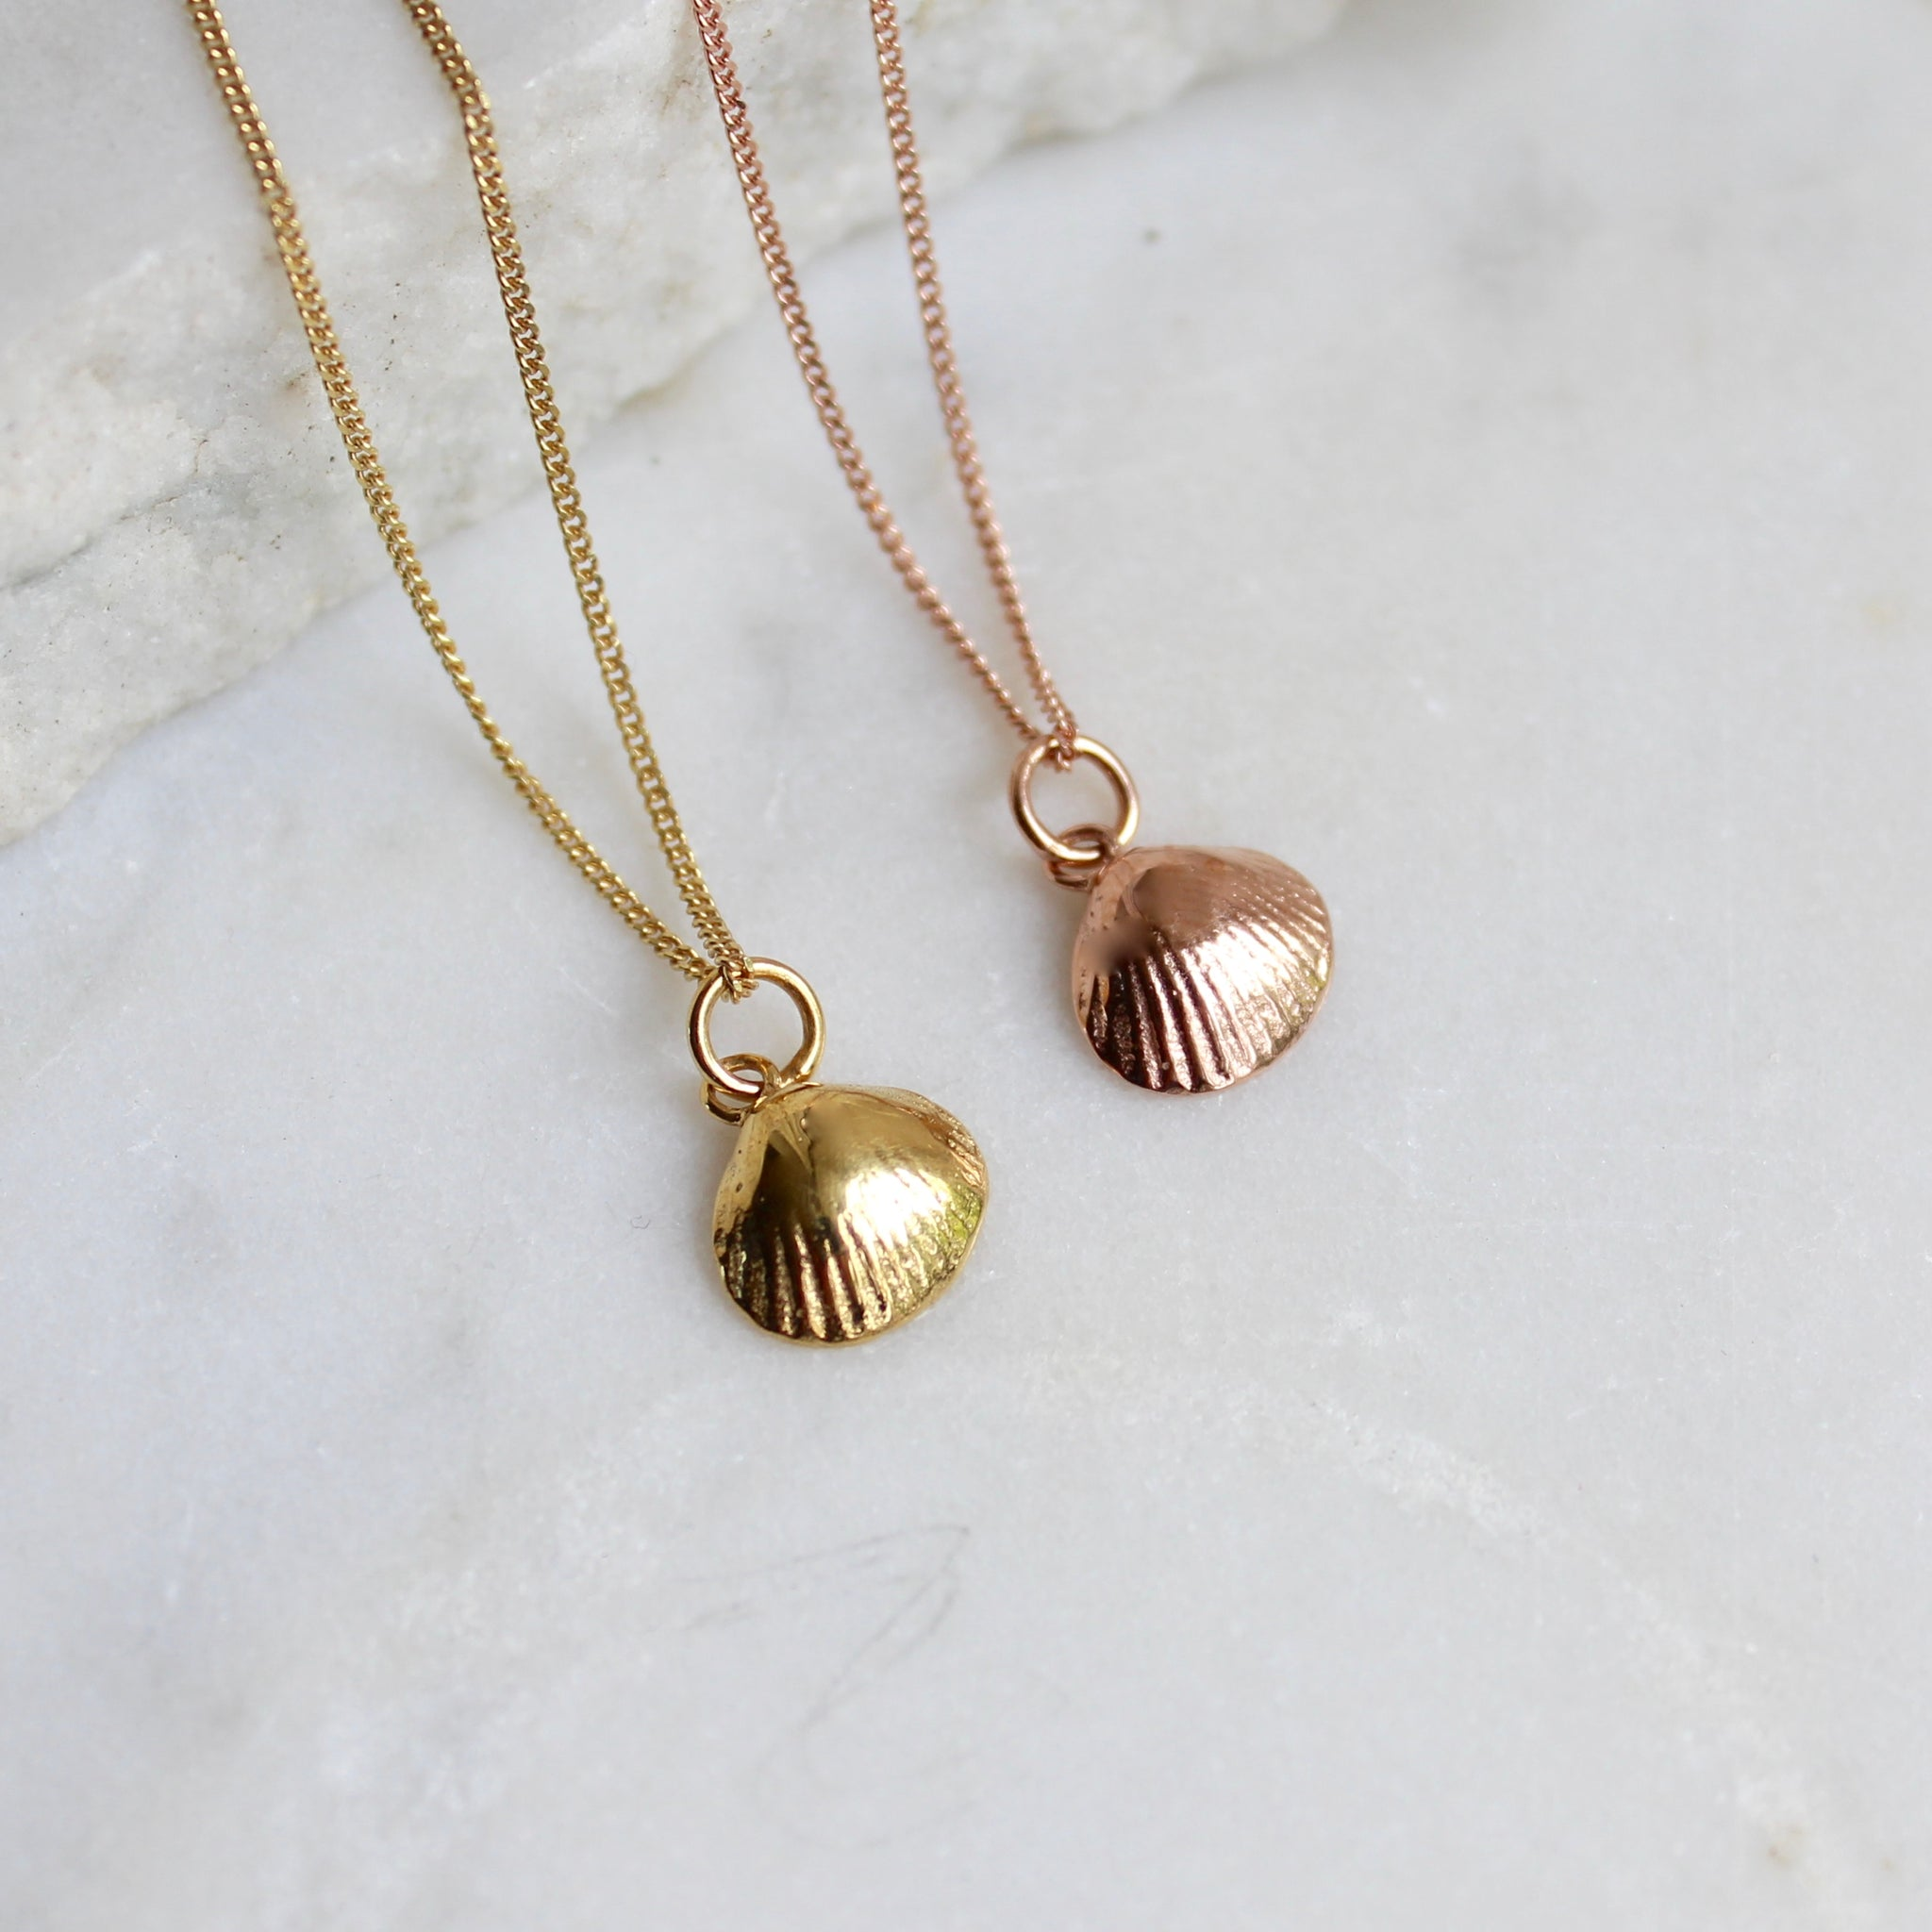 Tiny Shell Charm Necklace Gold or Rose Gold Vermeil